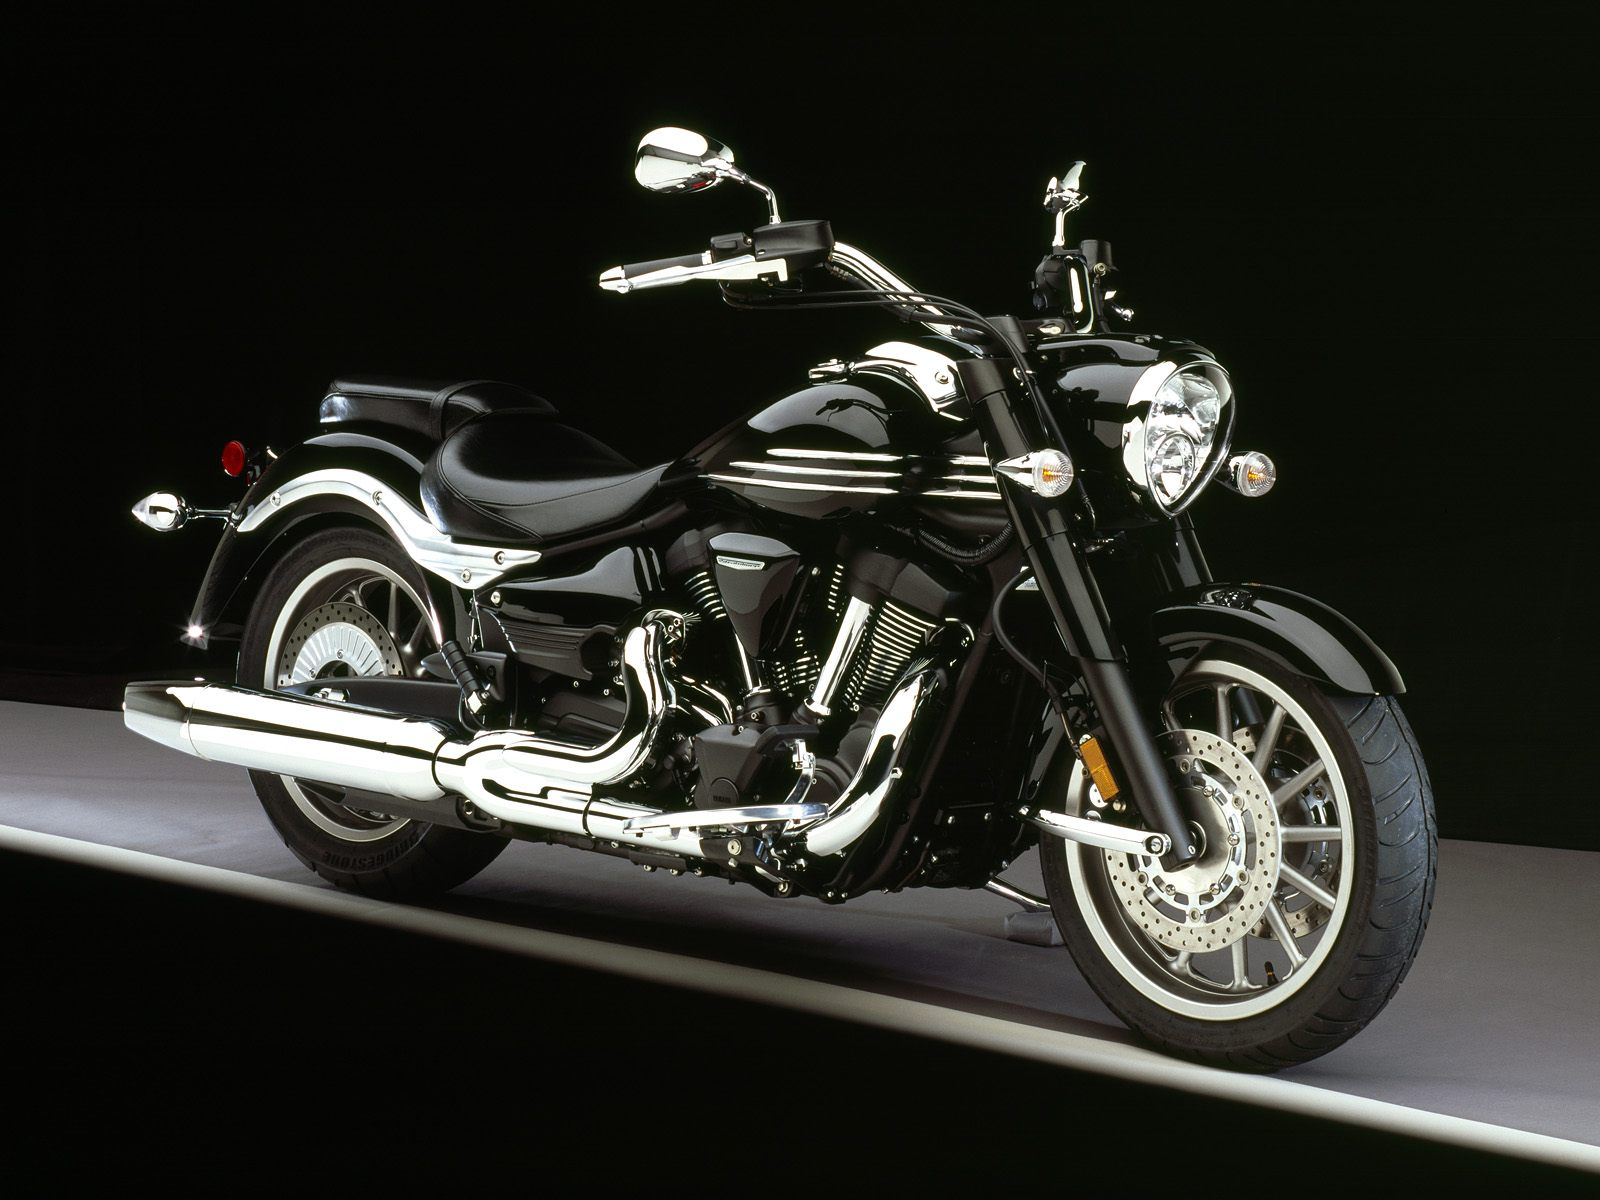 yamaha roadliner midnight-pic. 1